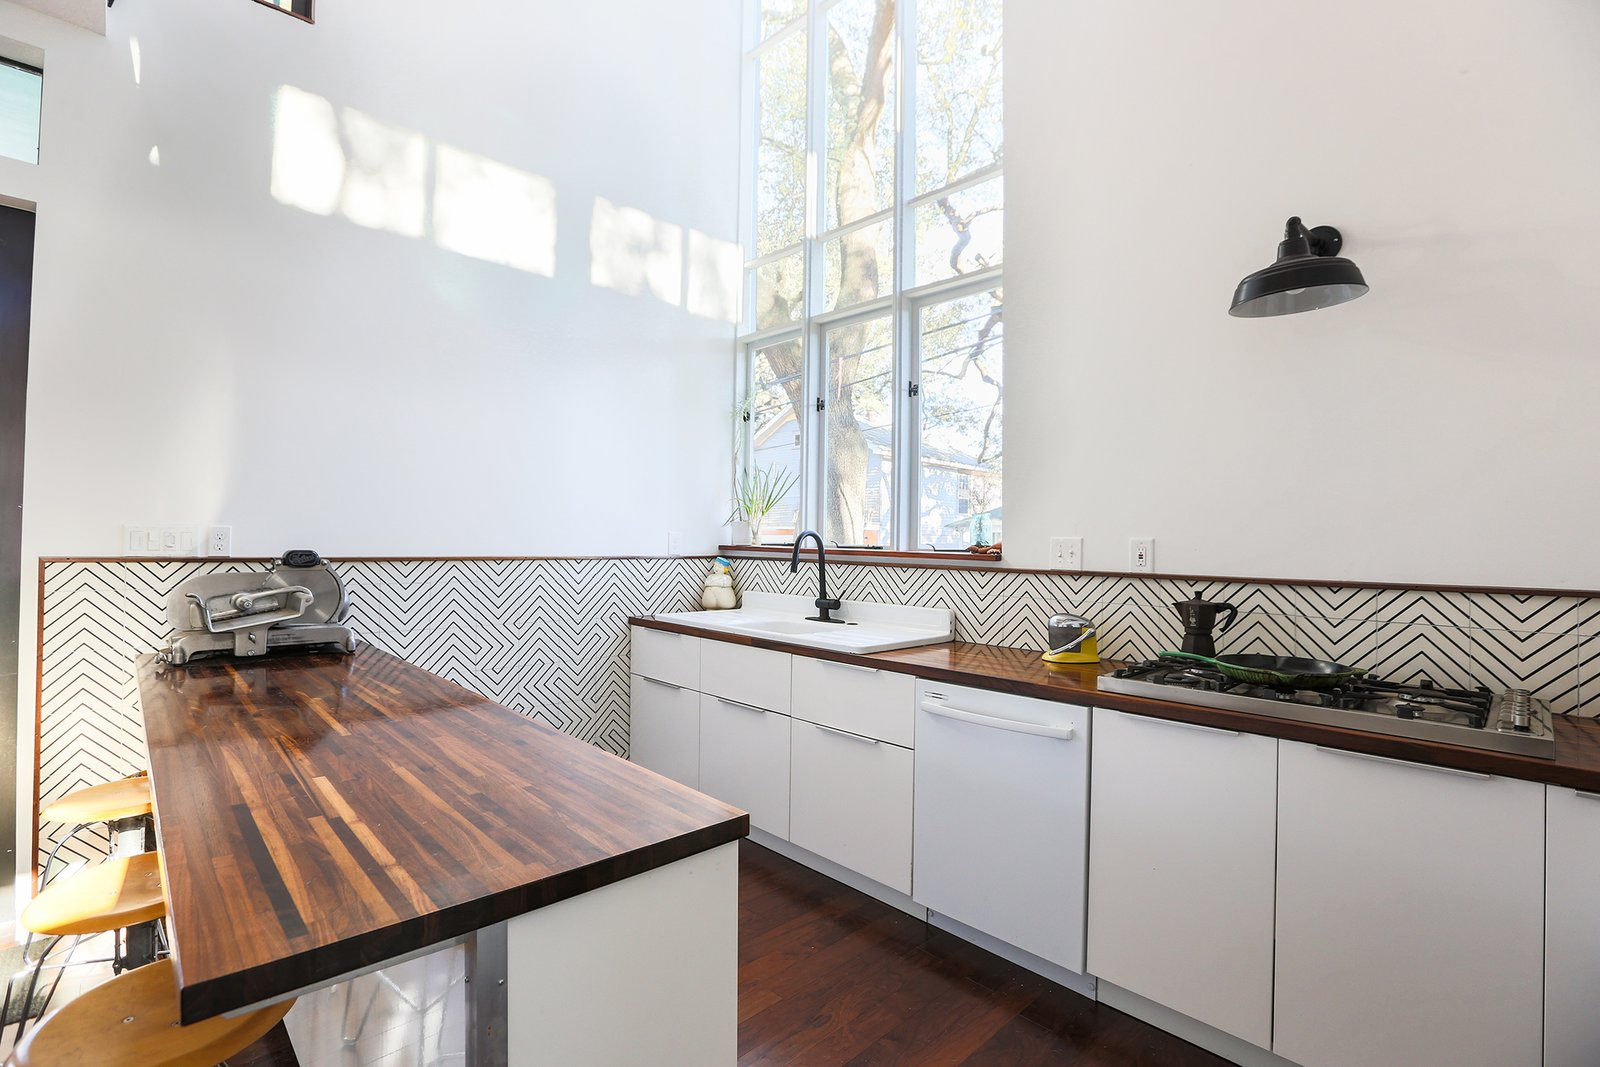 Kitchen, Wood Counter, White Cabinet, Dark Hardwood Floor, Ceramic Tile Backsplashe, Wall Lighting, Drop In Sink, and Dishwasher The light-filled kitchen space. Cle tiles are used as backsplash, Ikea cabinets and Walnut butcher-block countertops make the working surfaces of the space.   Dorgenois